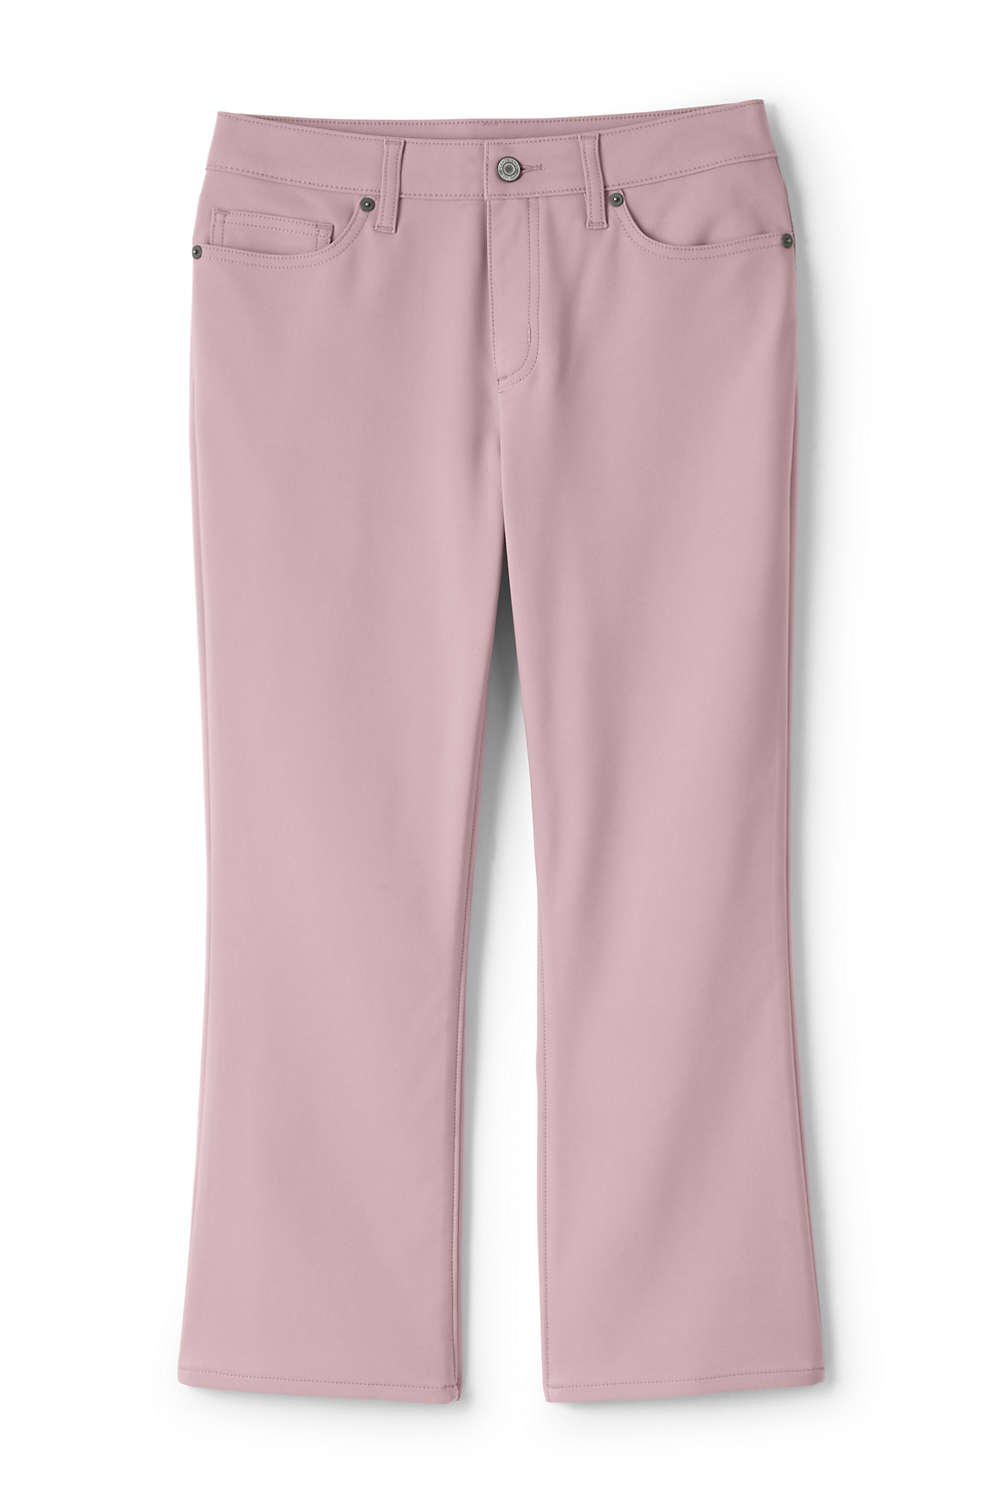 435557ef153 Women s Plus Size Mid Rise Kick Crop Pants from Lands  End